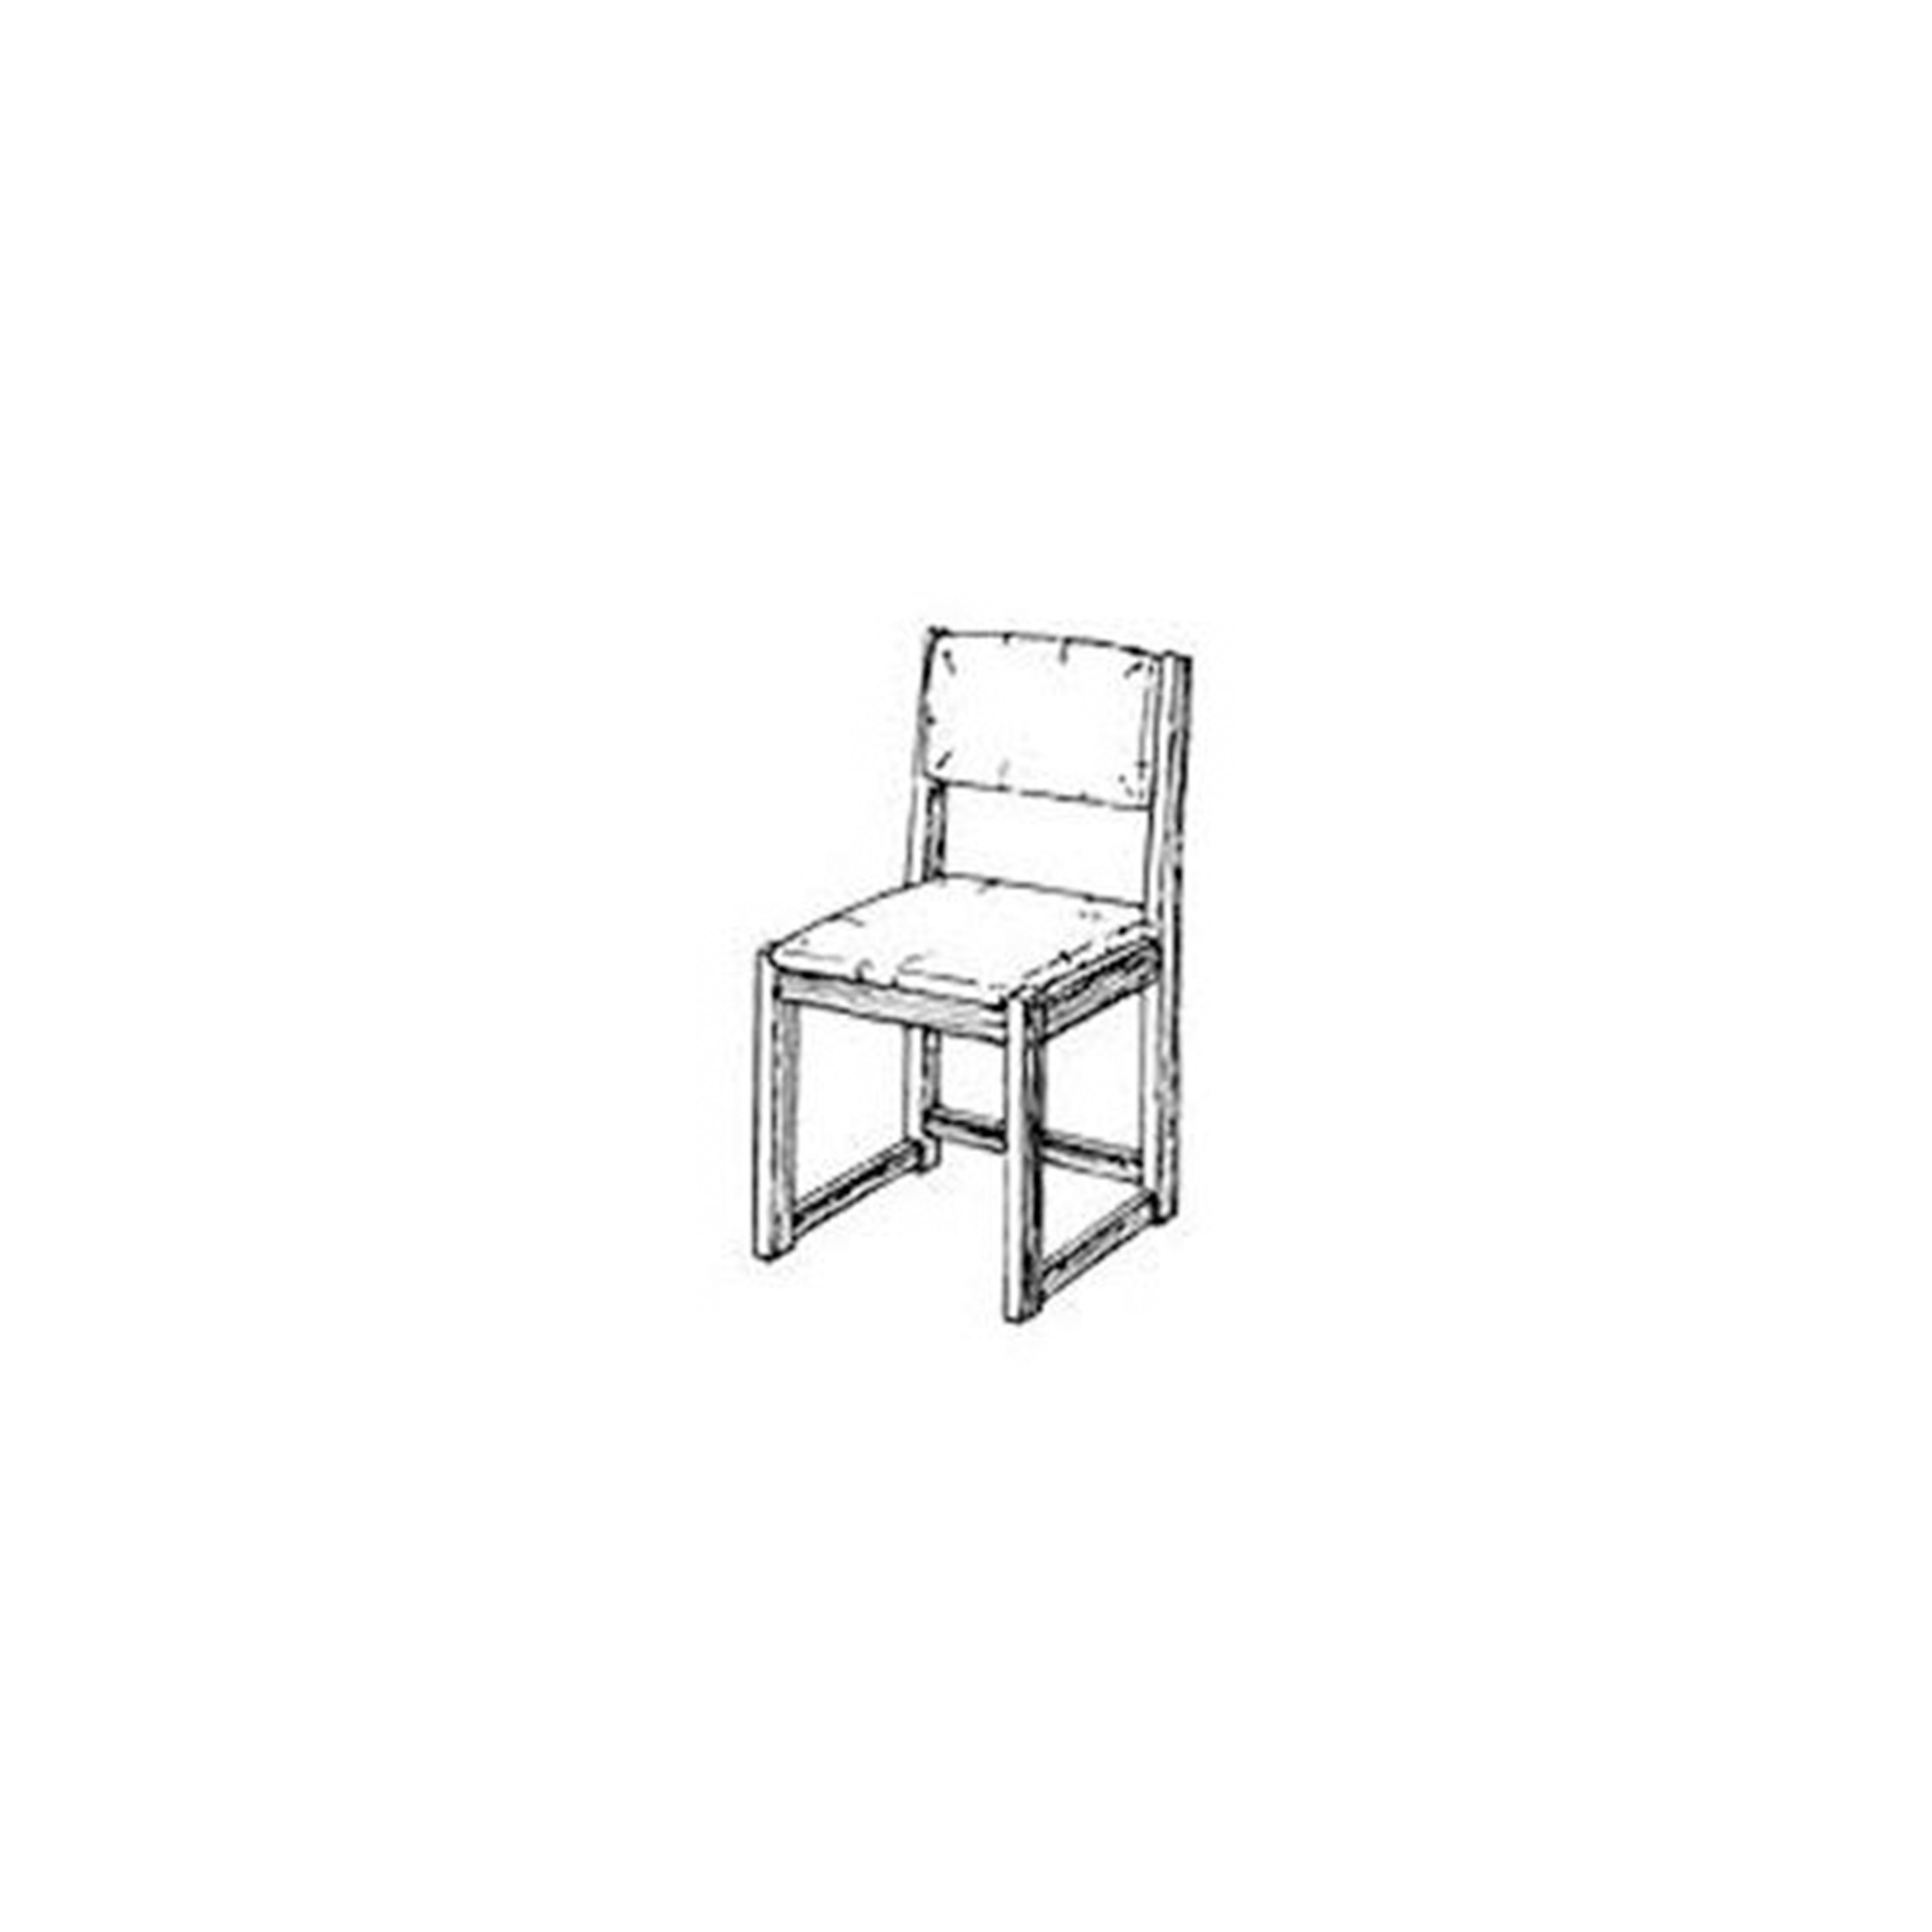 Woodworking Project Paper Plan to Build Simple Side Chair